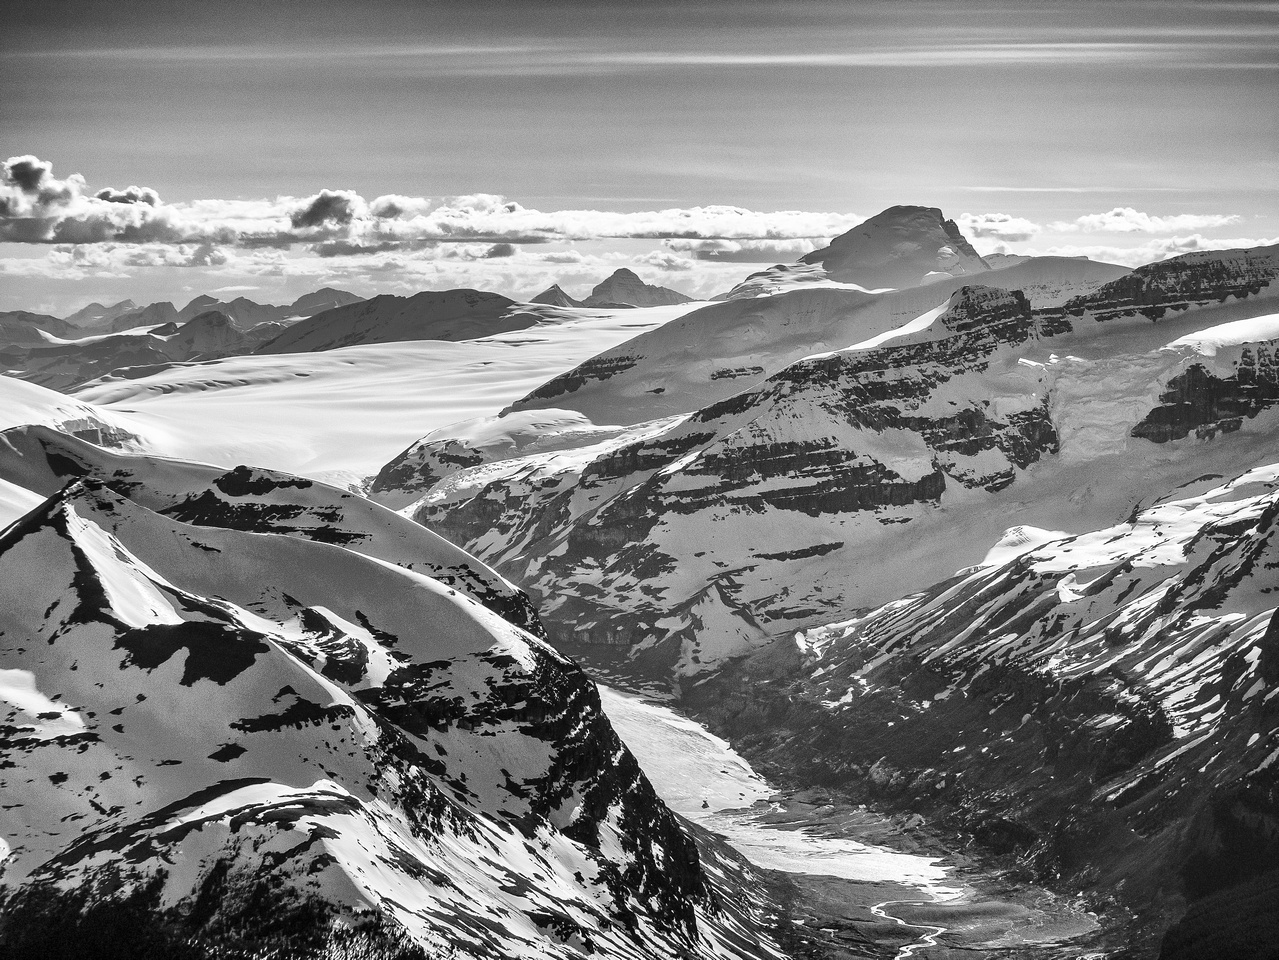 Mount Columbia looms over Andromeda and the Saskatchewan Glacier approach valley.